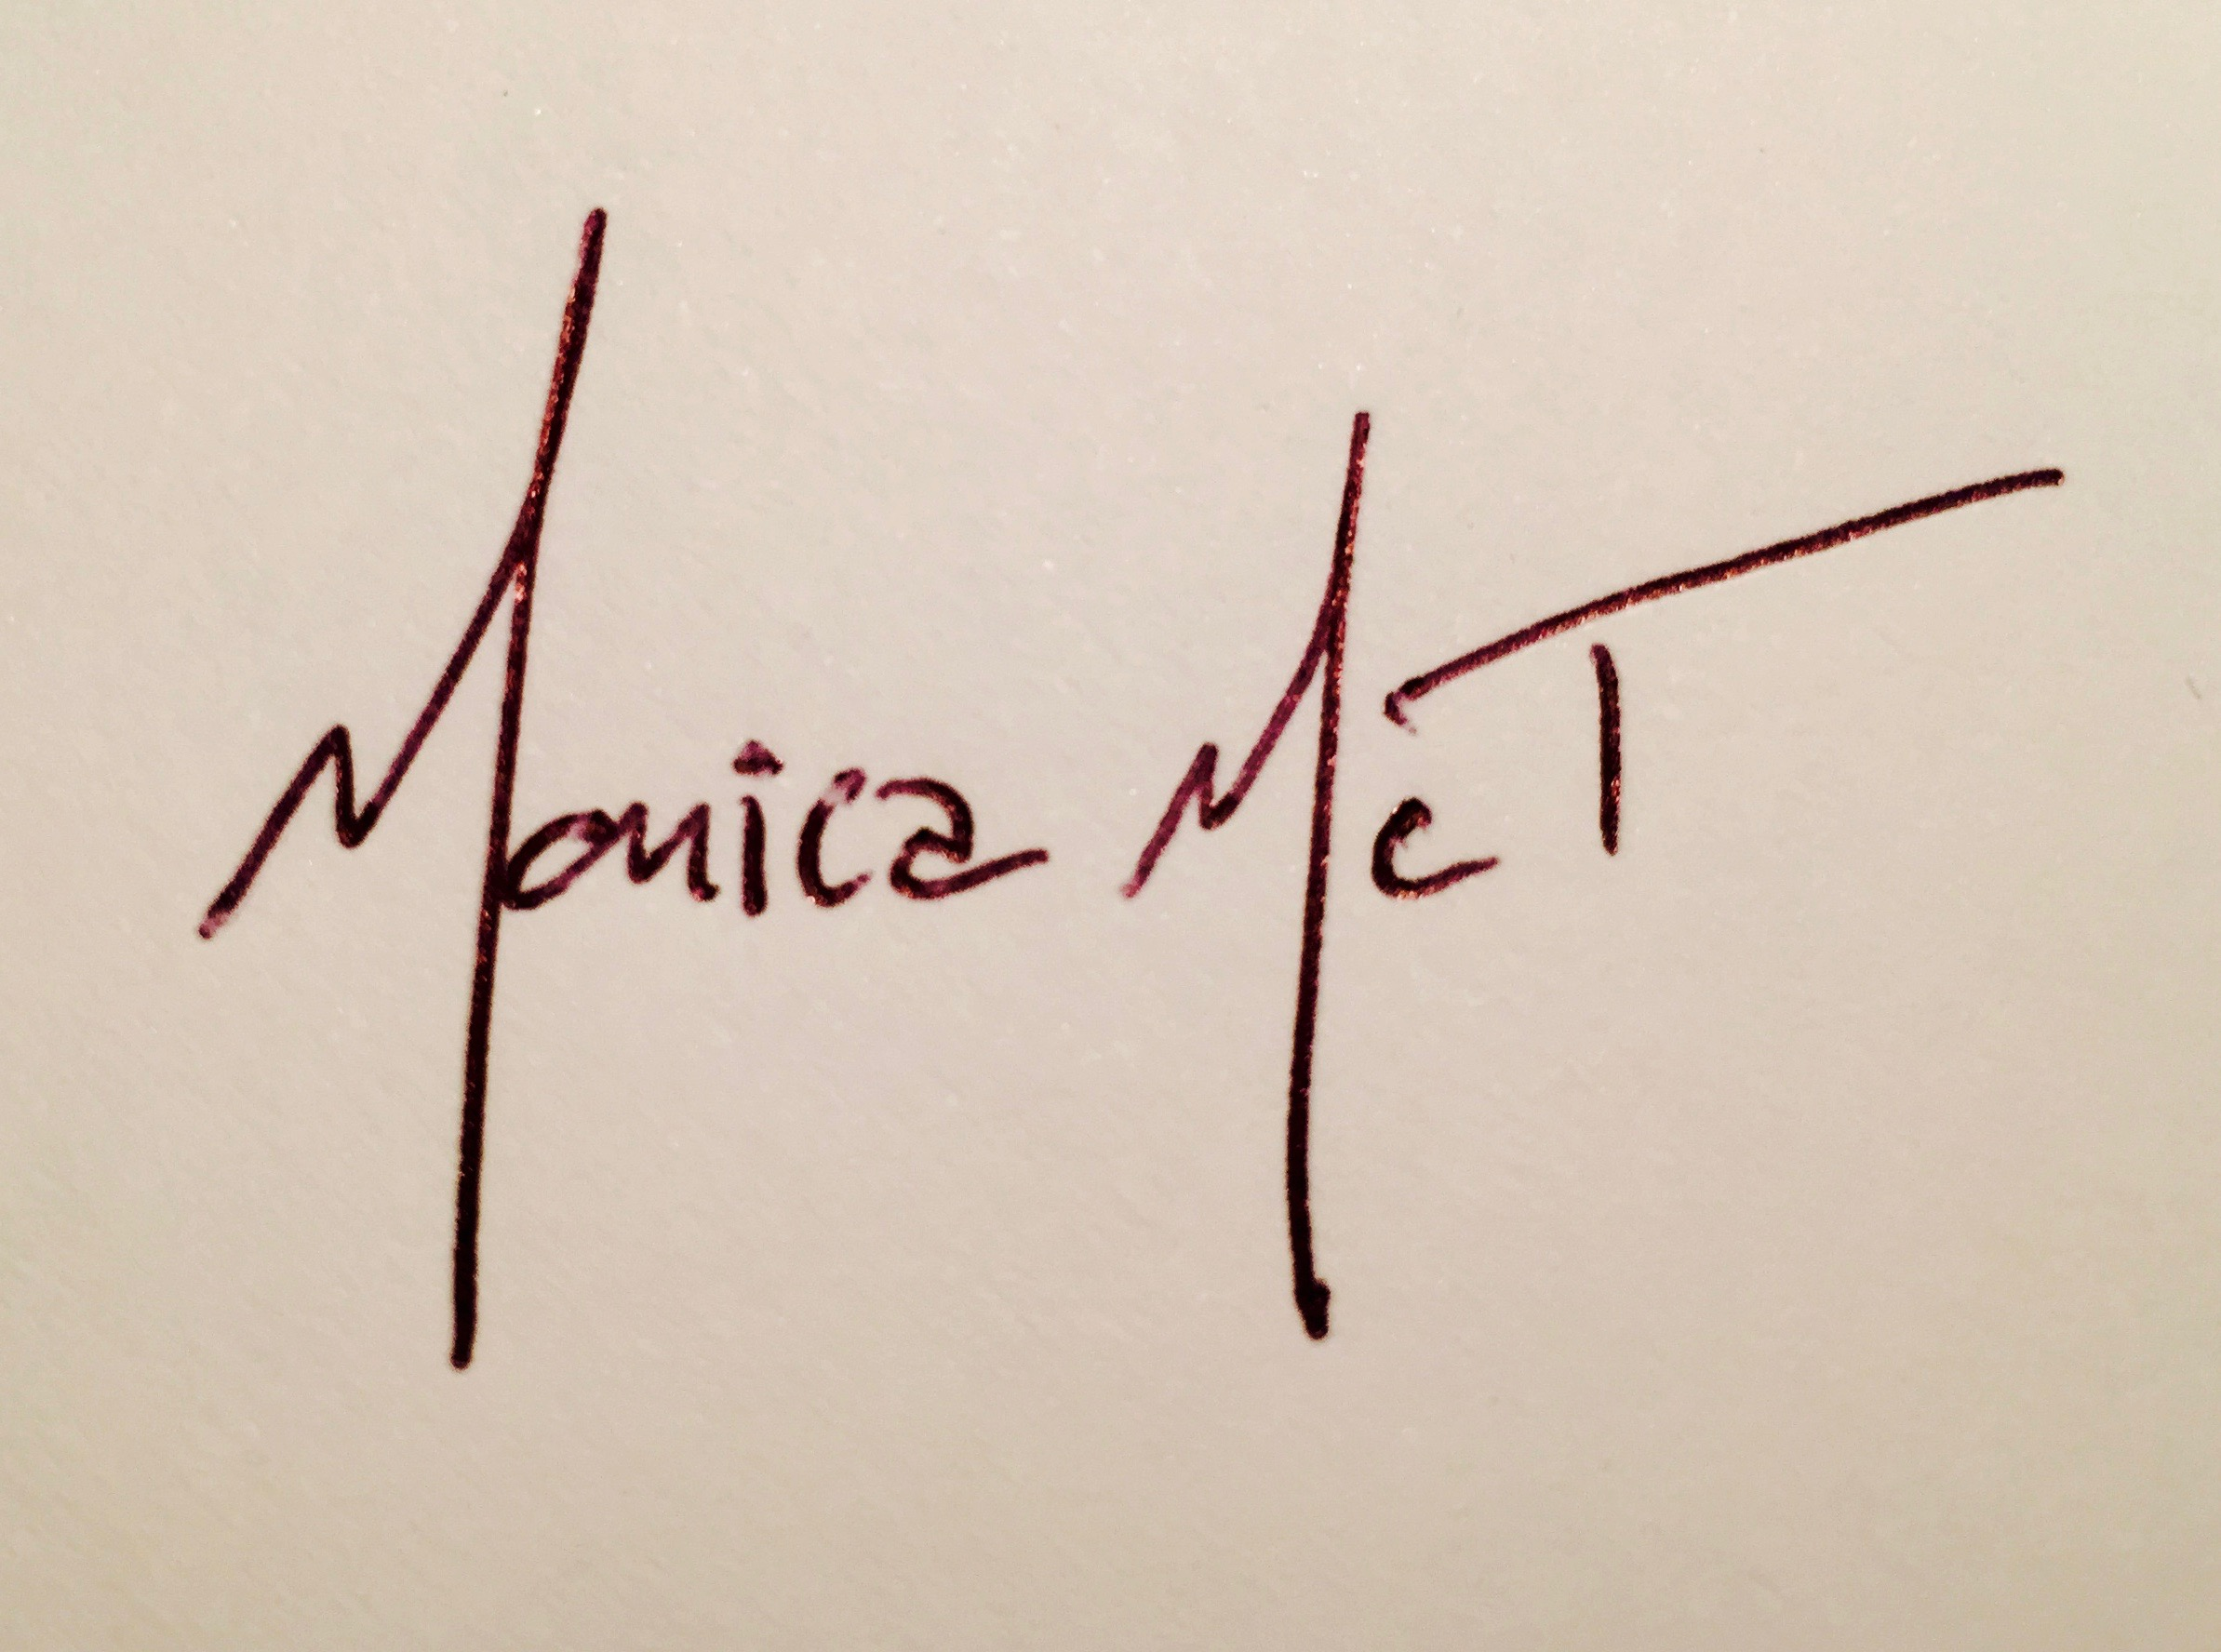 Monica McTaggart Signature